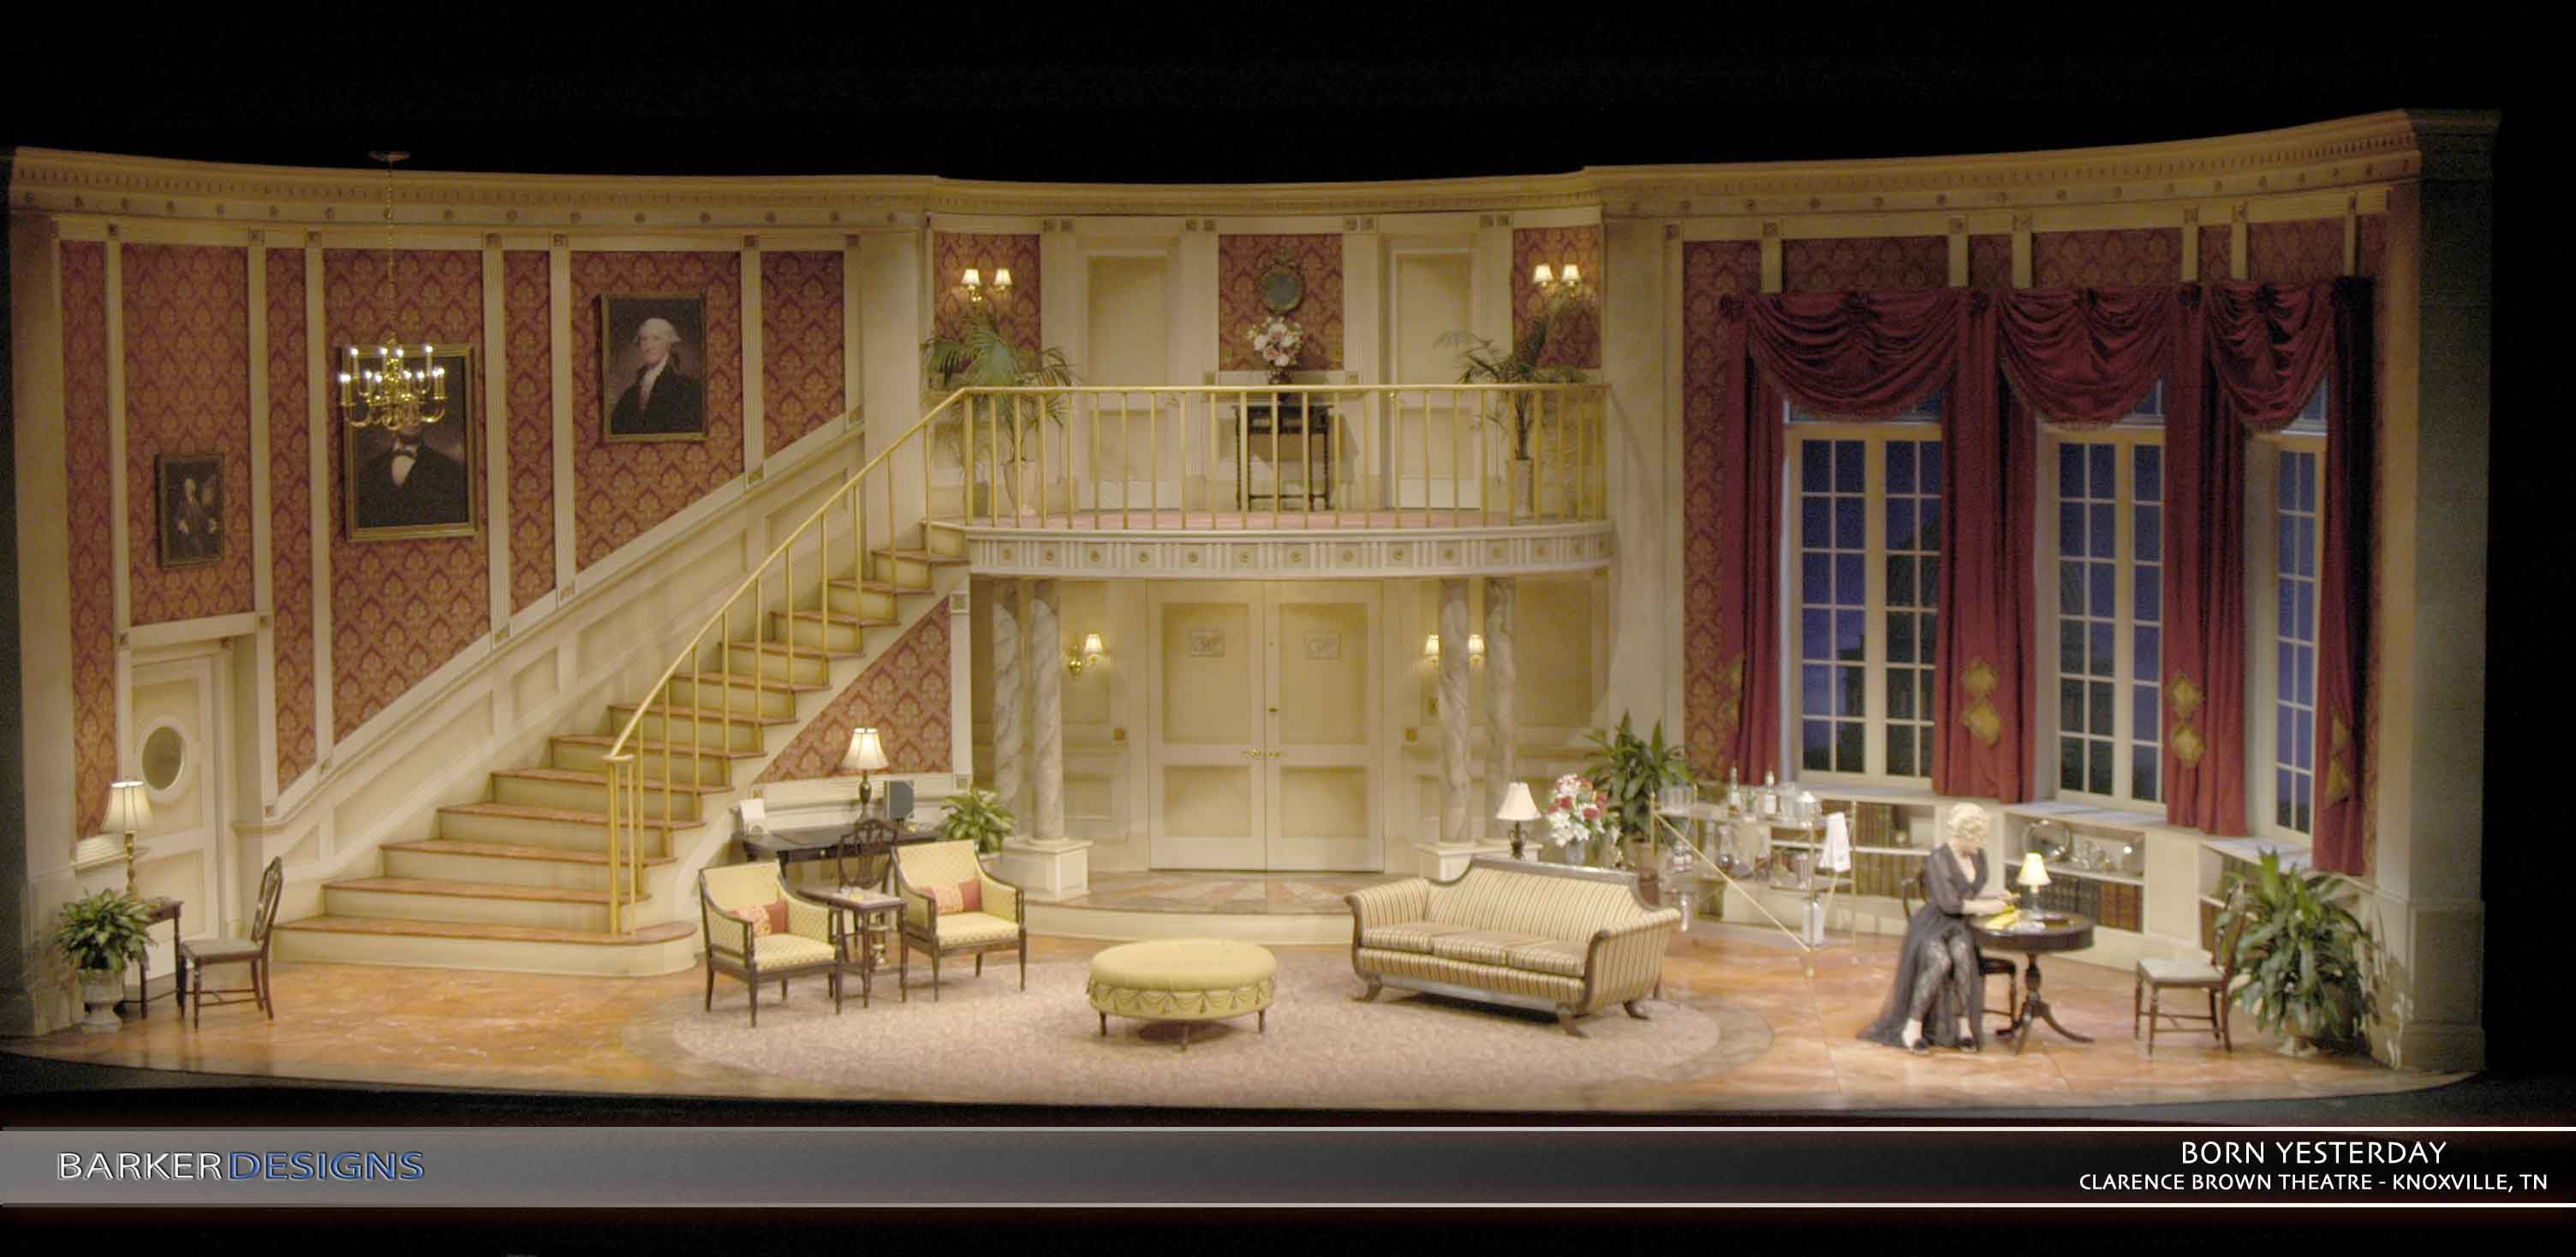 For this show the director asked for a fairly classic for Auditorium stage decoration